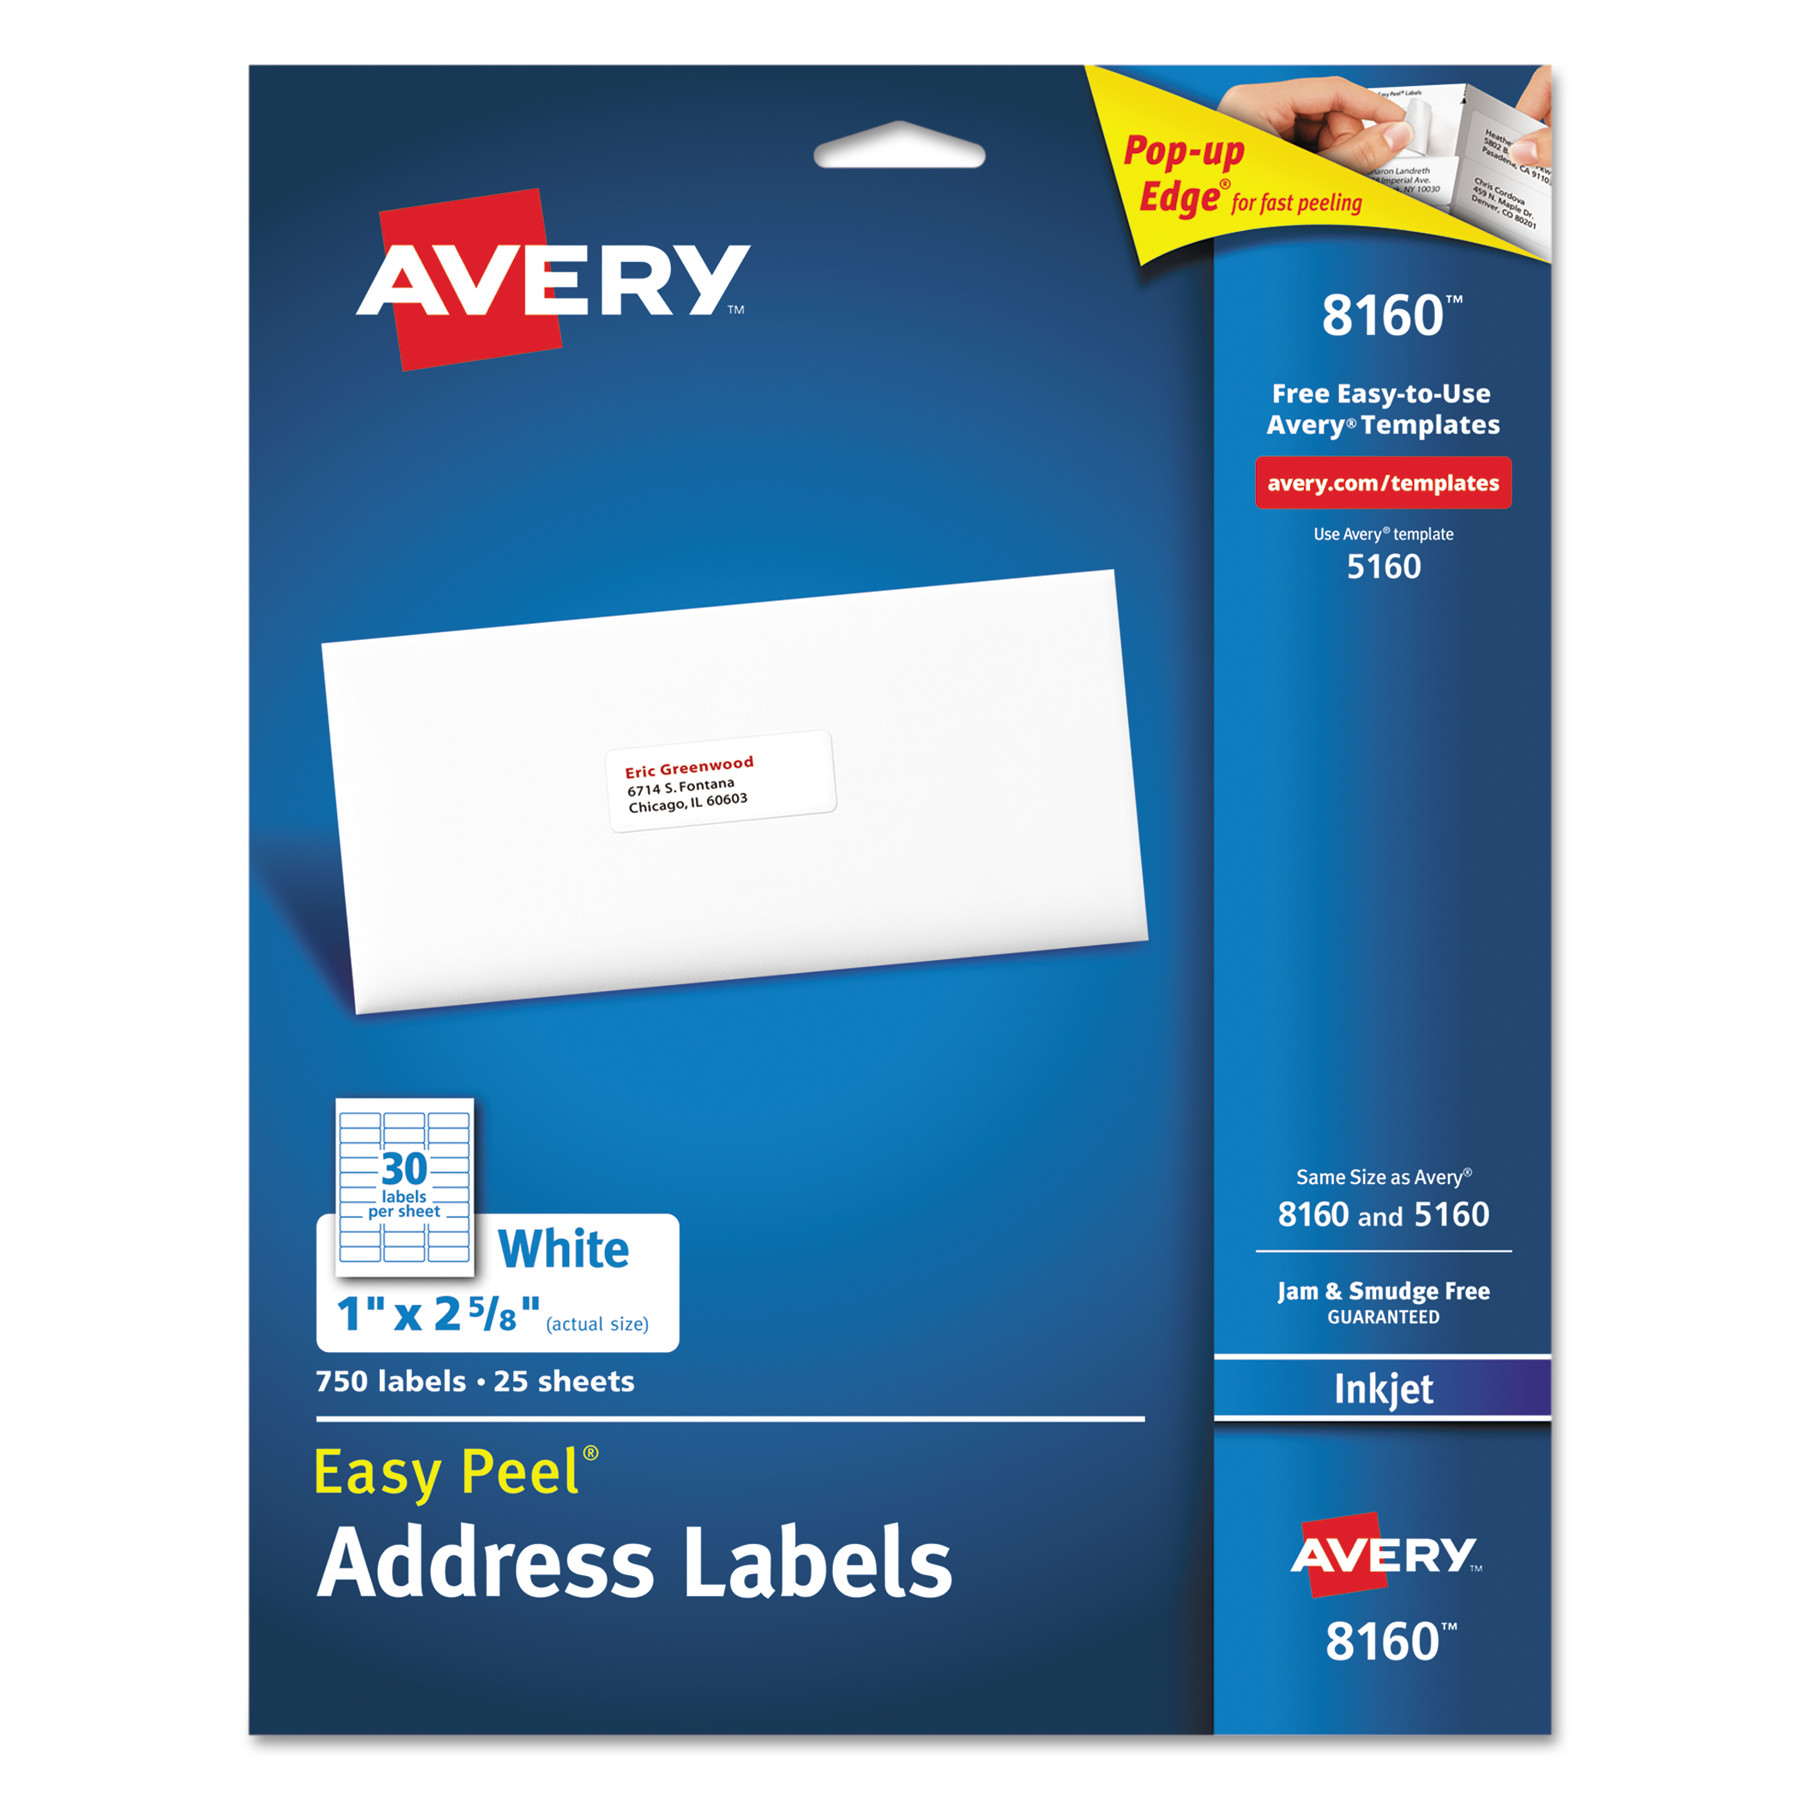 Avery(R) Easy Peel(R) Address Labels For Inkjet Printers 8160, 1